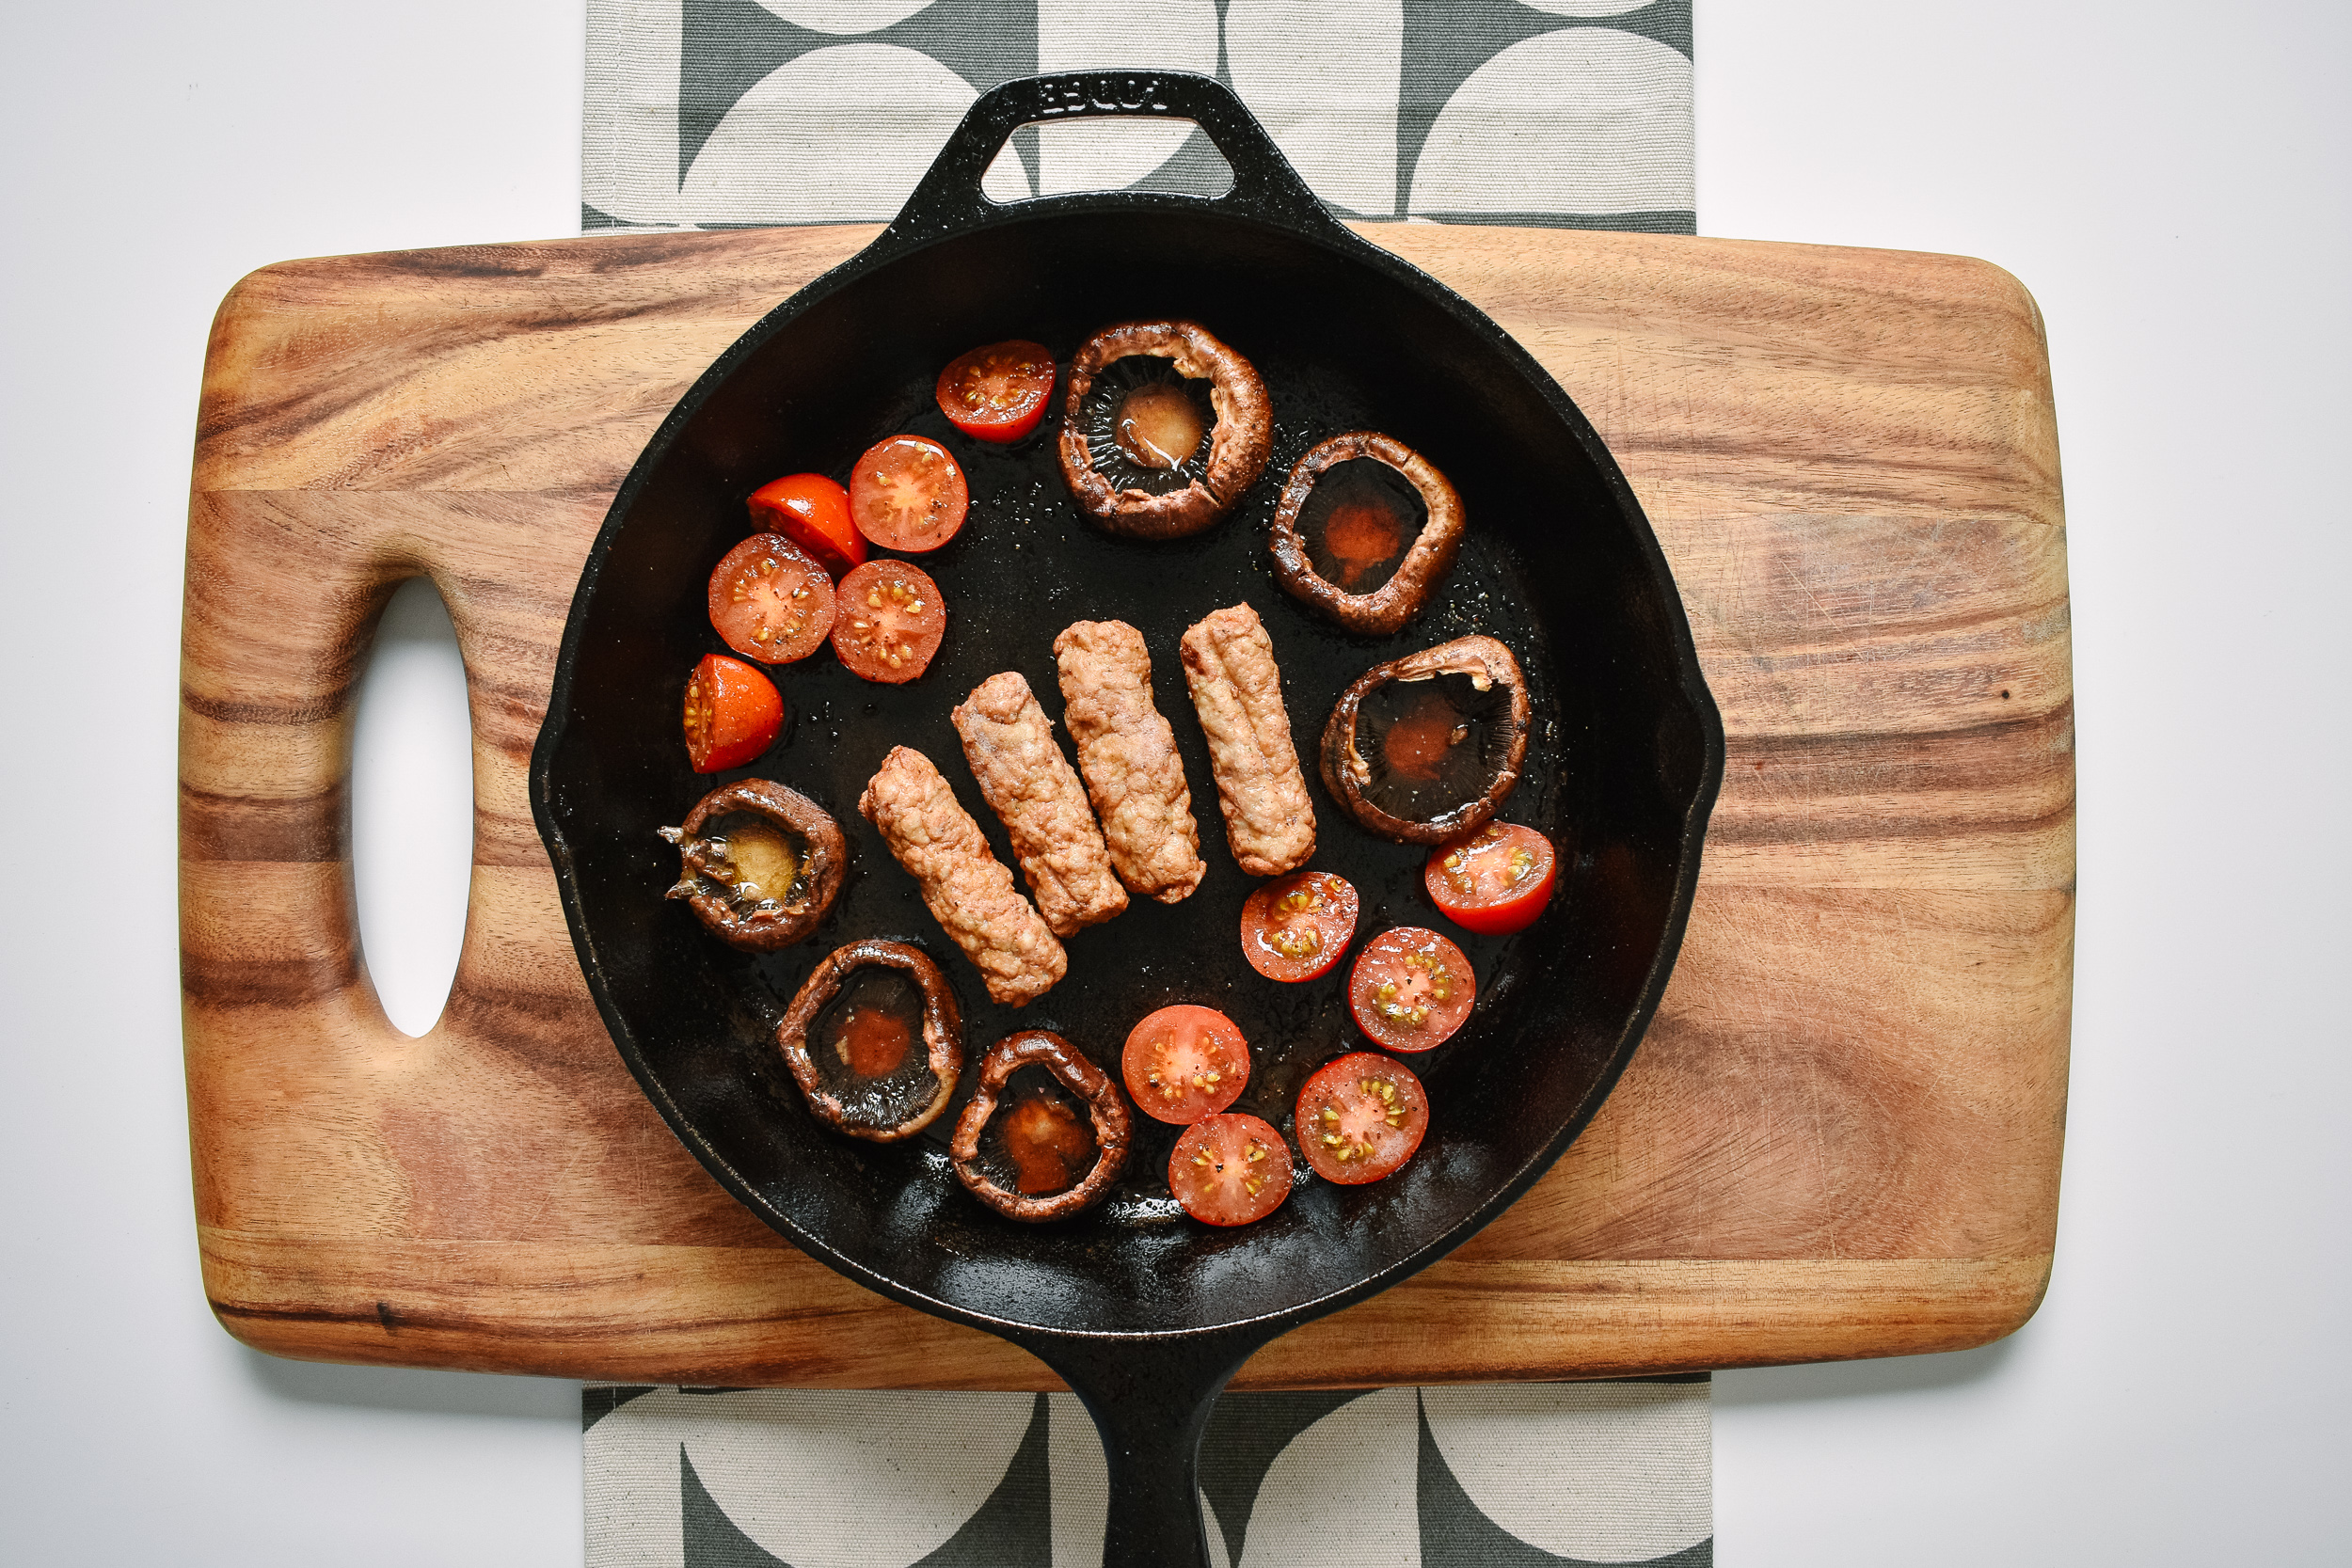 Add the sausage to the middle of the pan